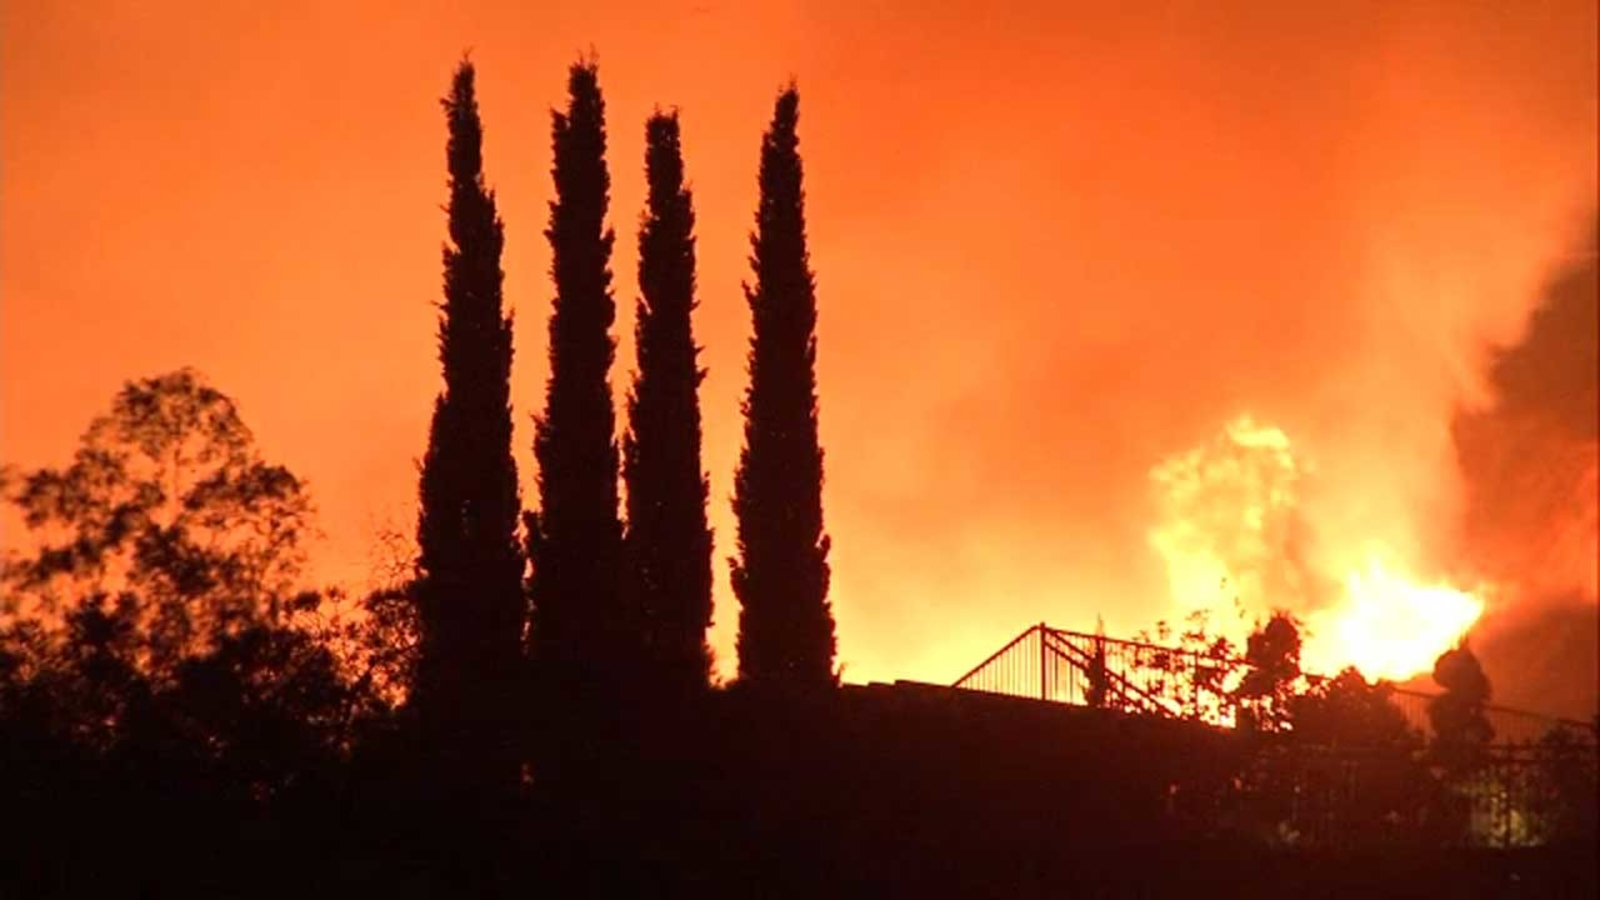 California fires affecting tourism destinations from Big Sur to Santa Cruz to Napa and Sonoma counties